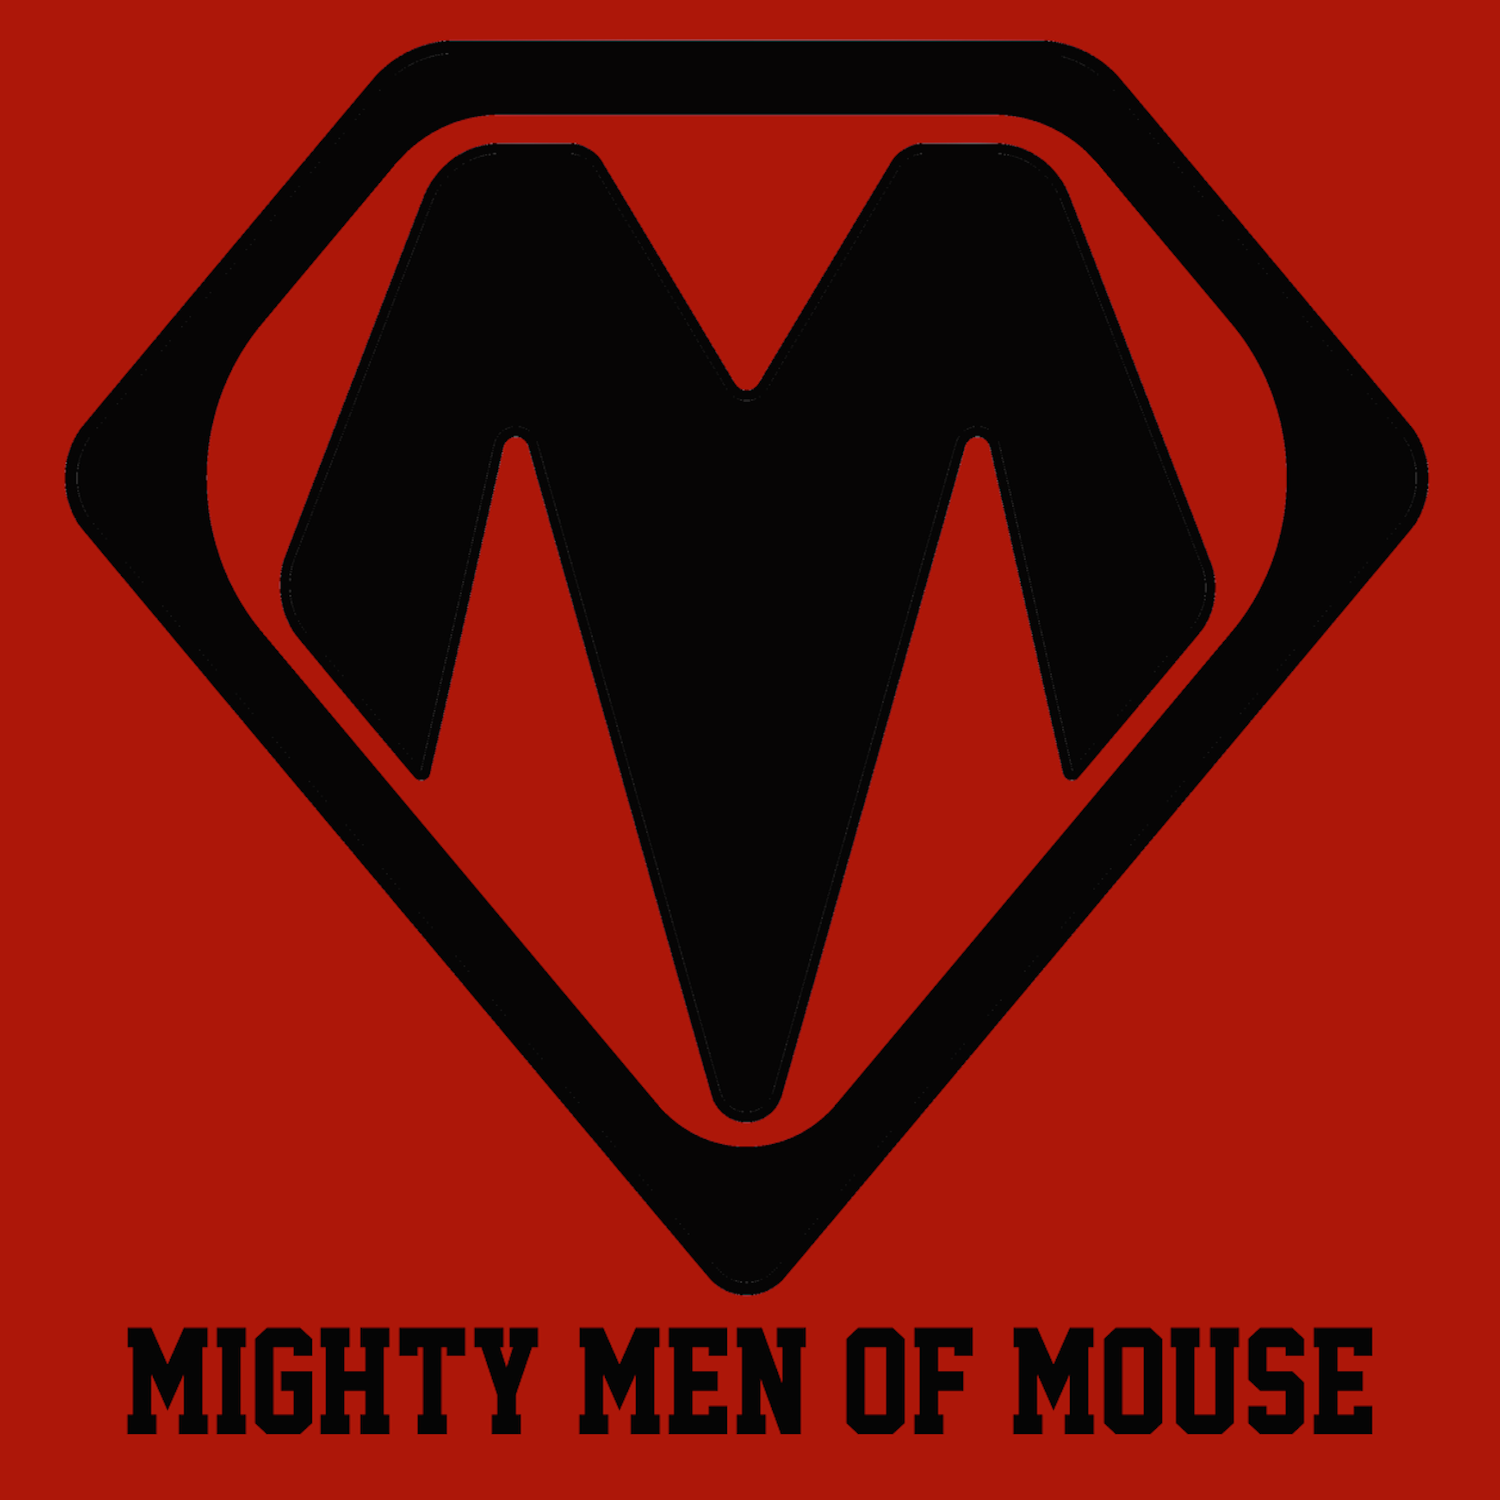 Mighty Men of Mouse: Episode 0397 -- Valuing Iger and Touring Old show art